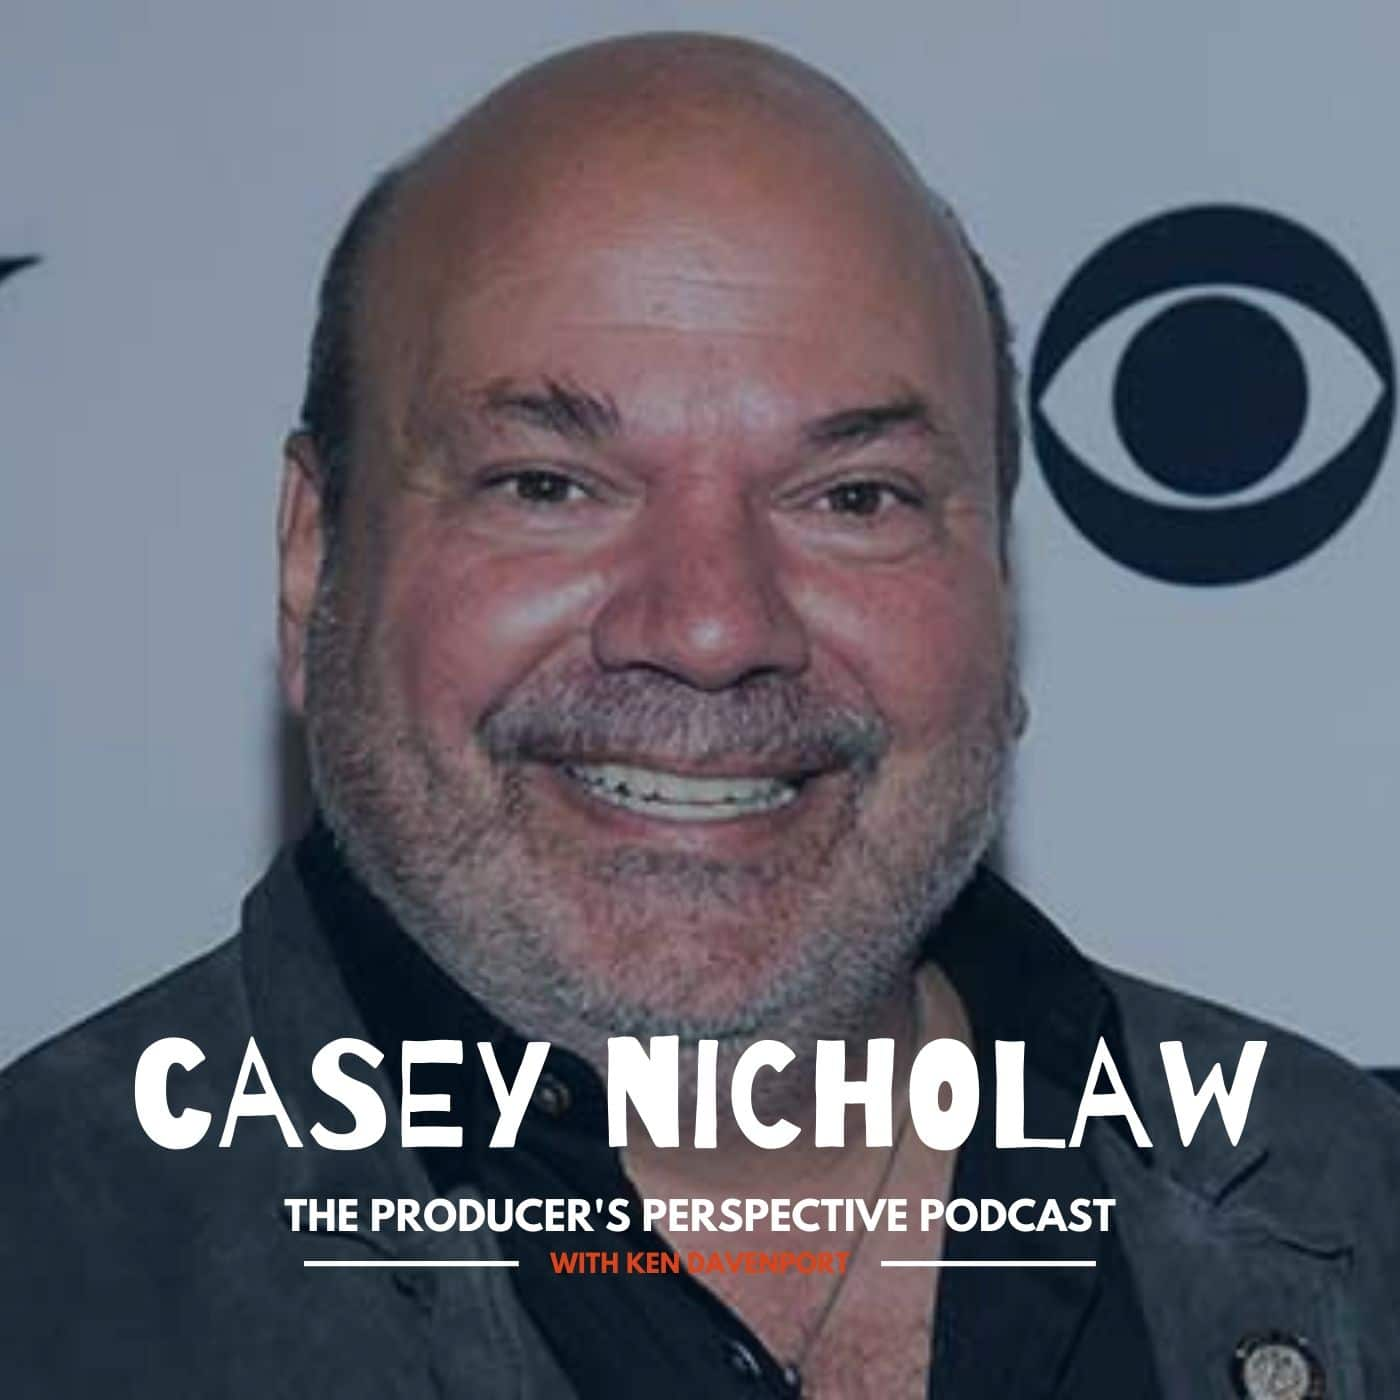 Ken Davenport's The Producer's Perspective Podcast Episode 42 - Casey Nicholaw